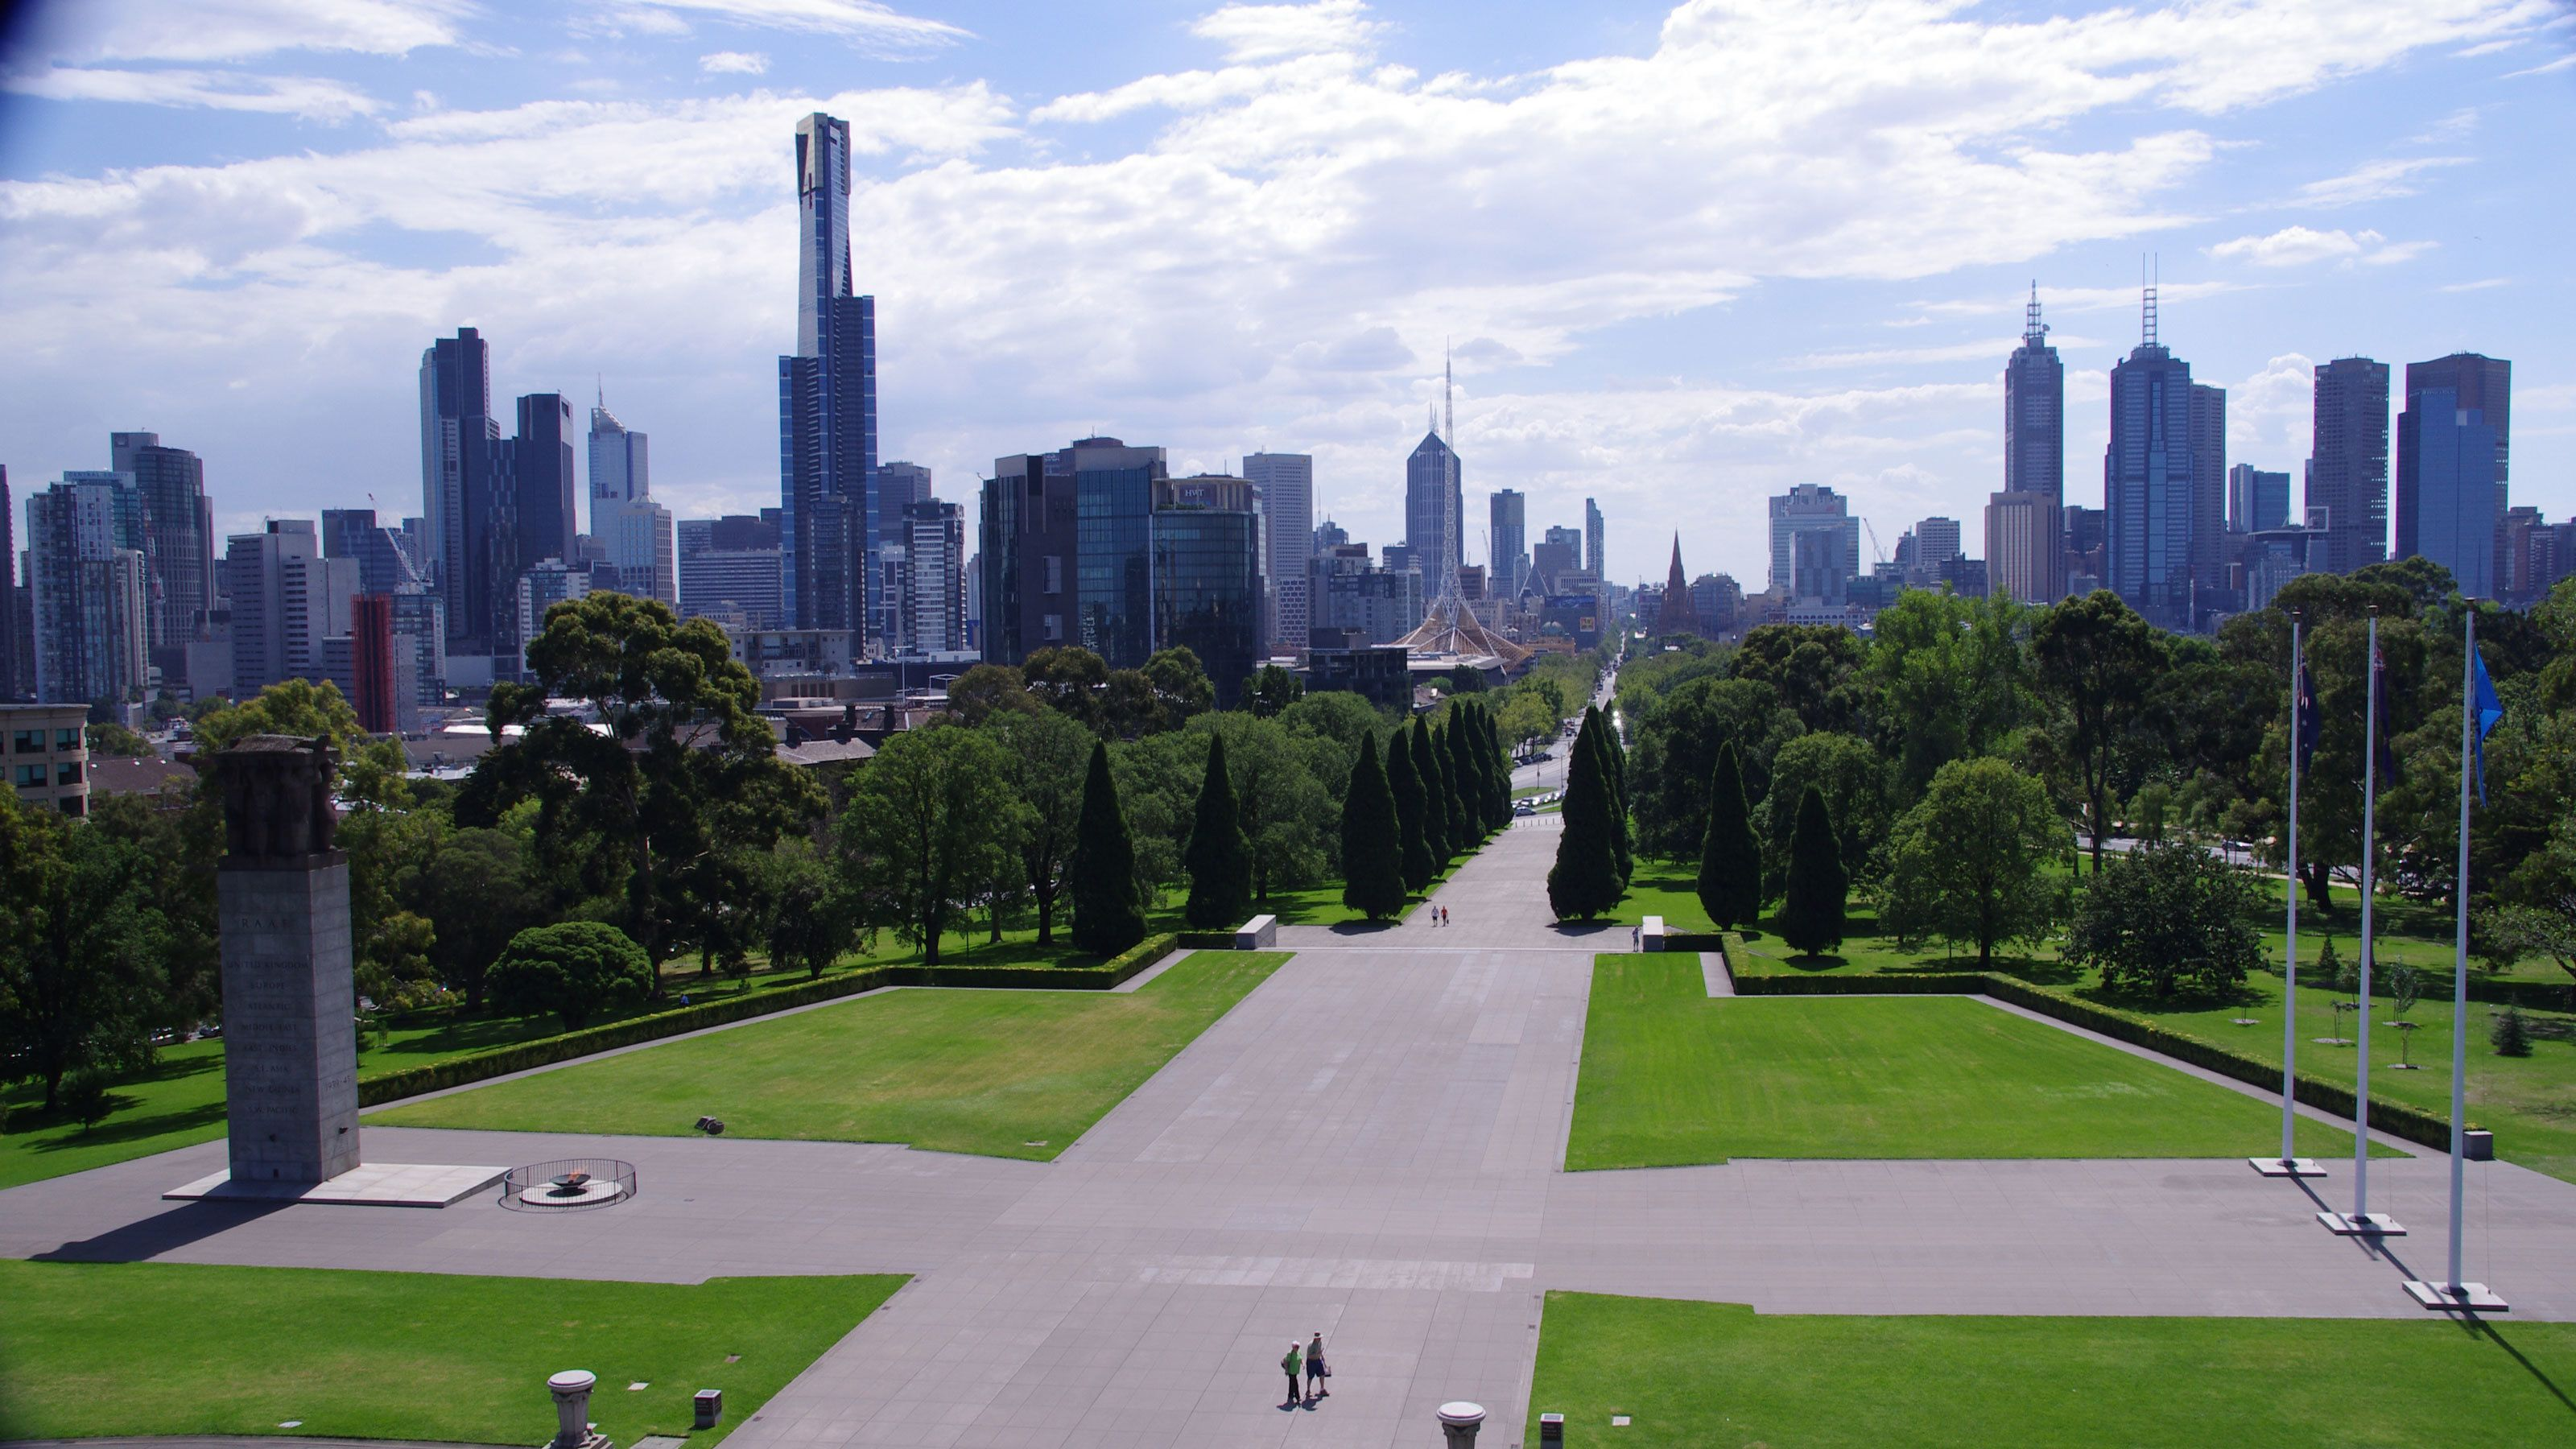 Paved walkways through the Royal Botanical Gardens with the city in the background in Melbourne